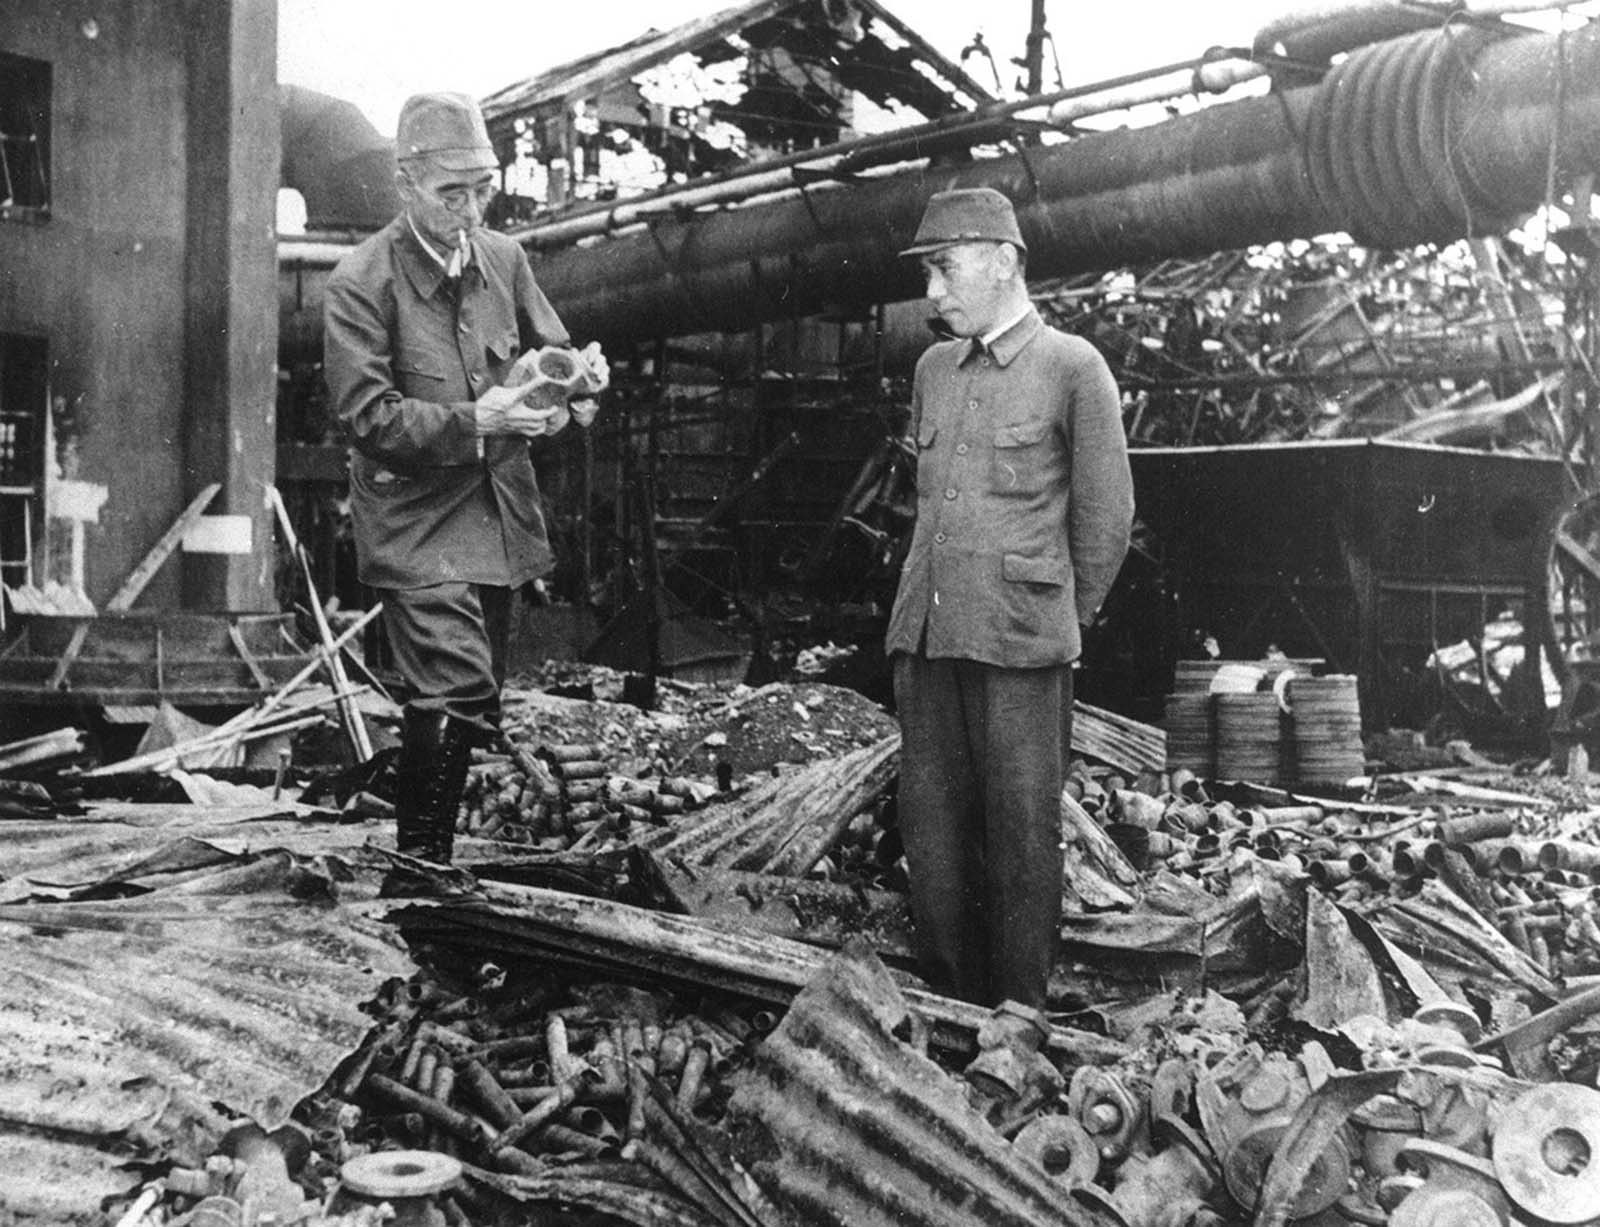 Ryozo Asano, left, spokesman for a group of diversified Japanese family enterprises called the Zaibatsu, inspects the wreckage of his steel plant in Tokyo, after the first U.S. air raid on Japan's capital, April 18, 1942. He is accompanied by an unidentified aide. Thirteen targets were struck, including an oil tank farm, a steel mill, and an aircraft carrier under construction. Some 50 Japanese lost their lives.